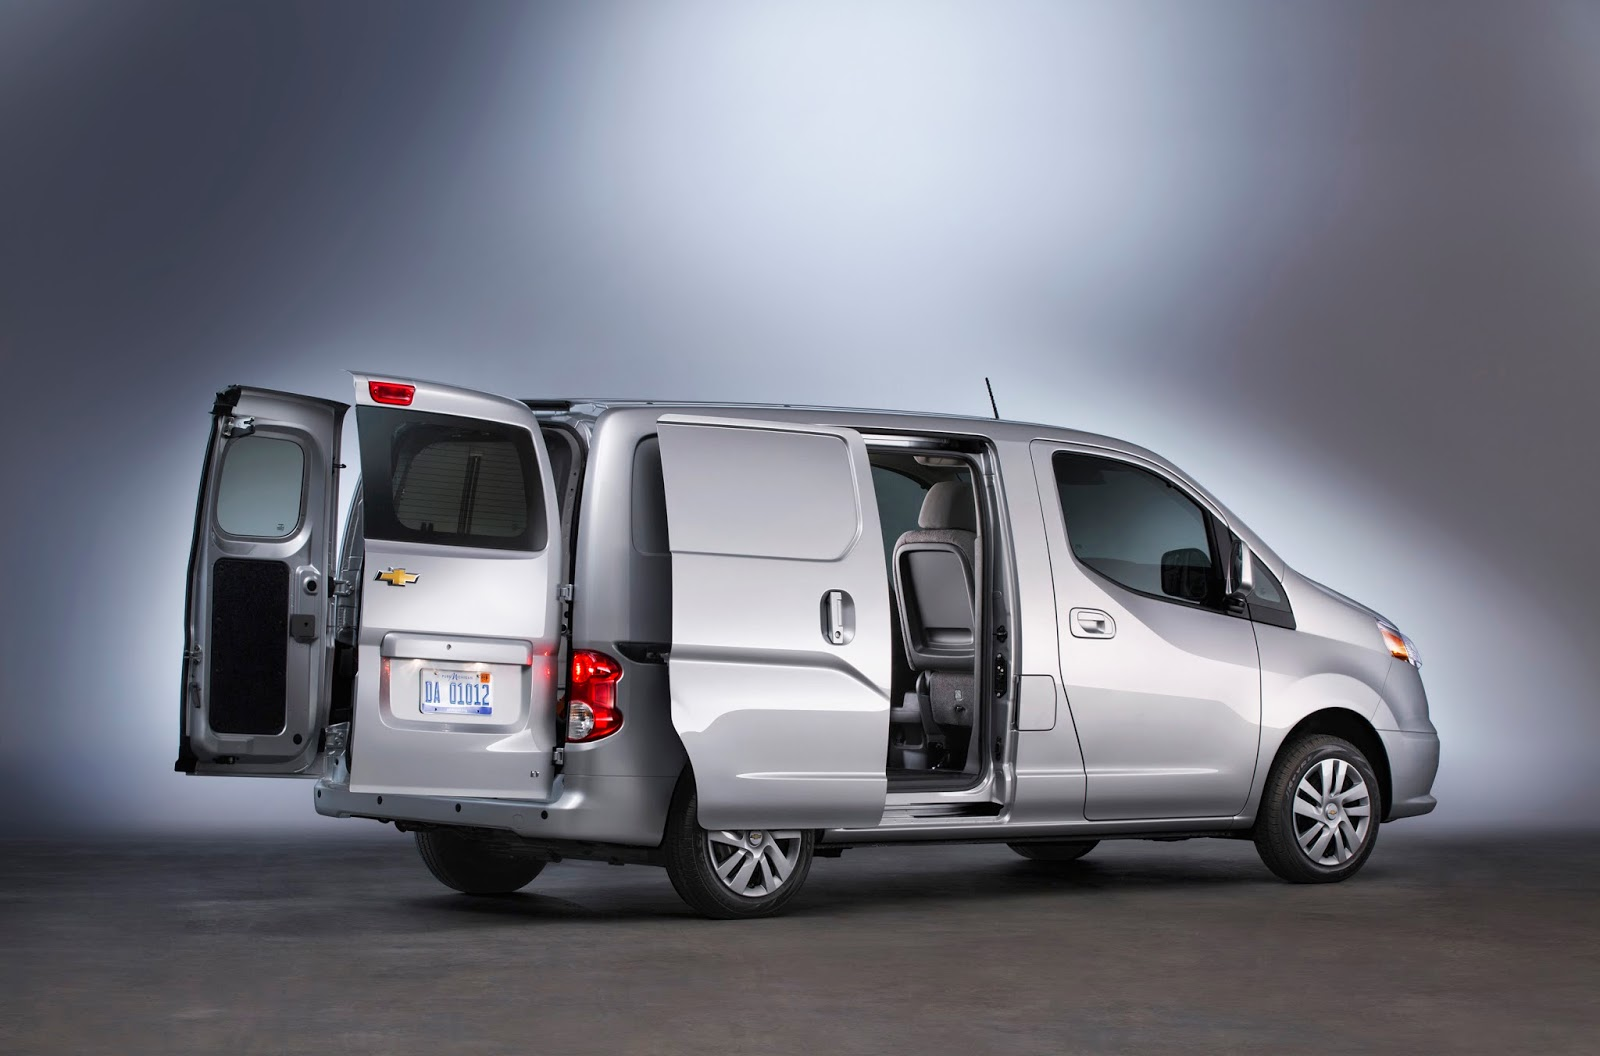 2015 Chevrolet City Express Cargo Van Pricing Announced